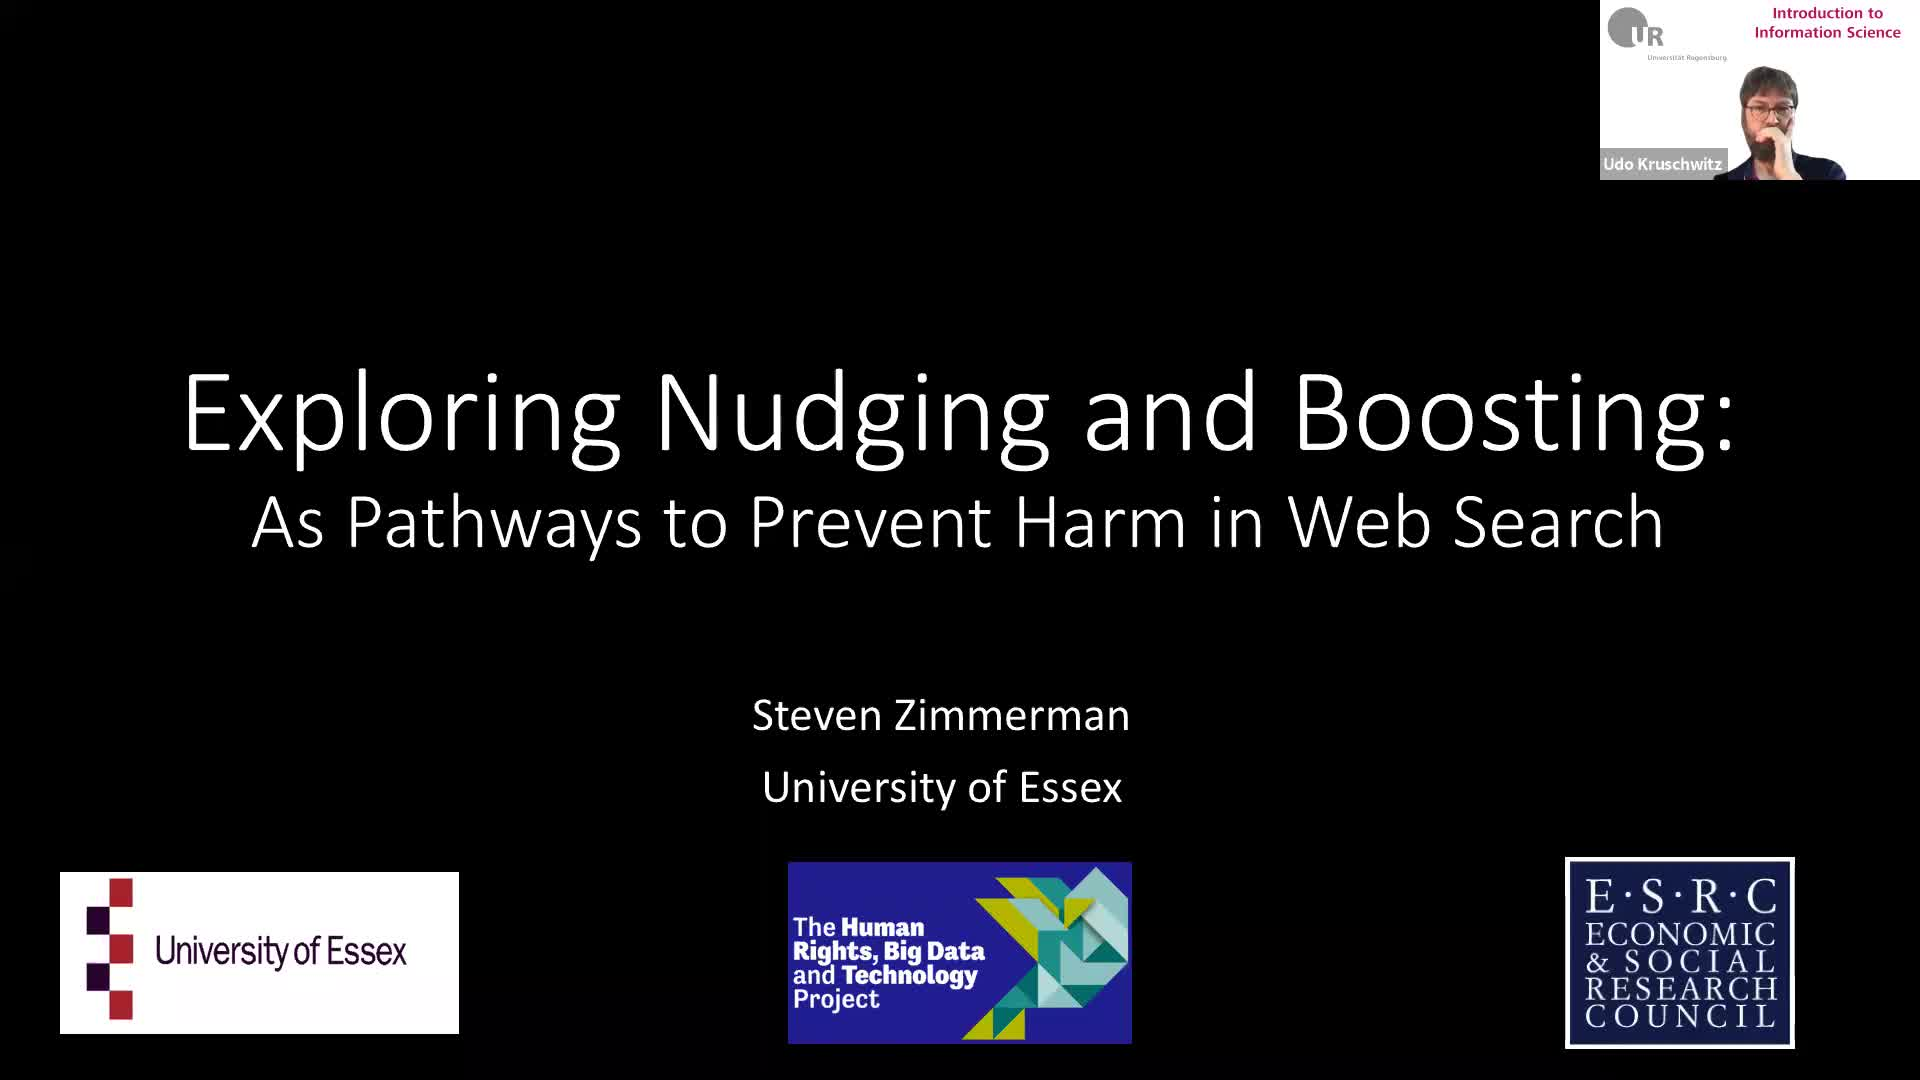 Introduction to Information Science - Lecture 8 (Guest lecture: Exploring Nudging and Boosting)